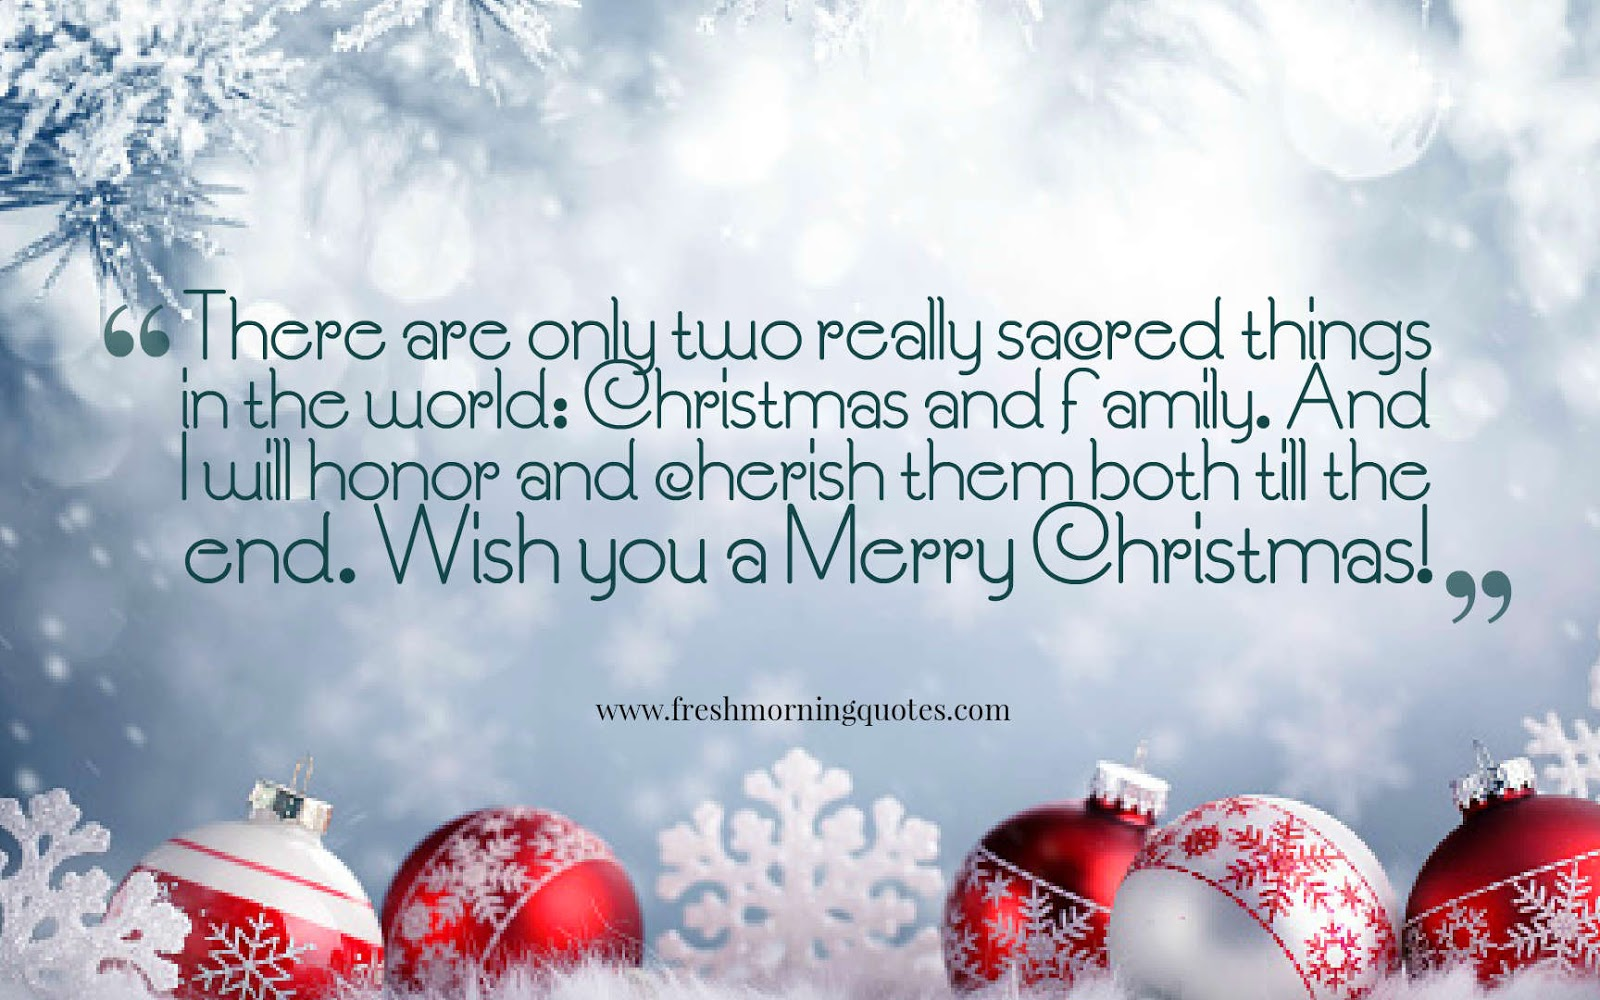 wish you a merry Christmas quotes